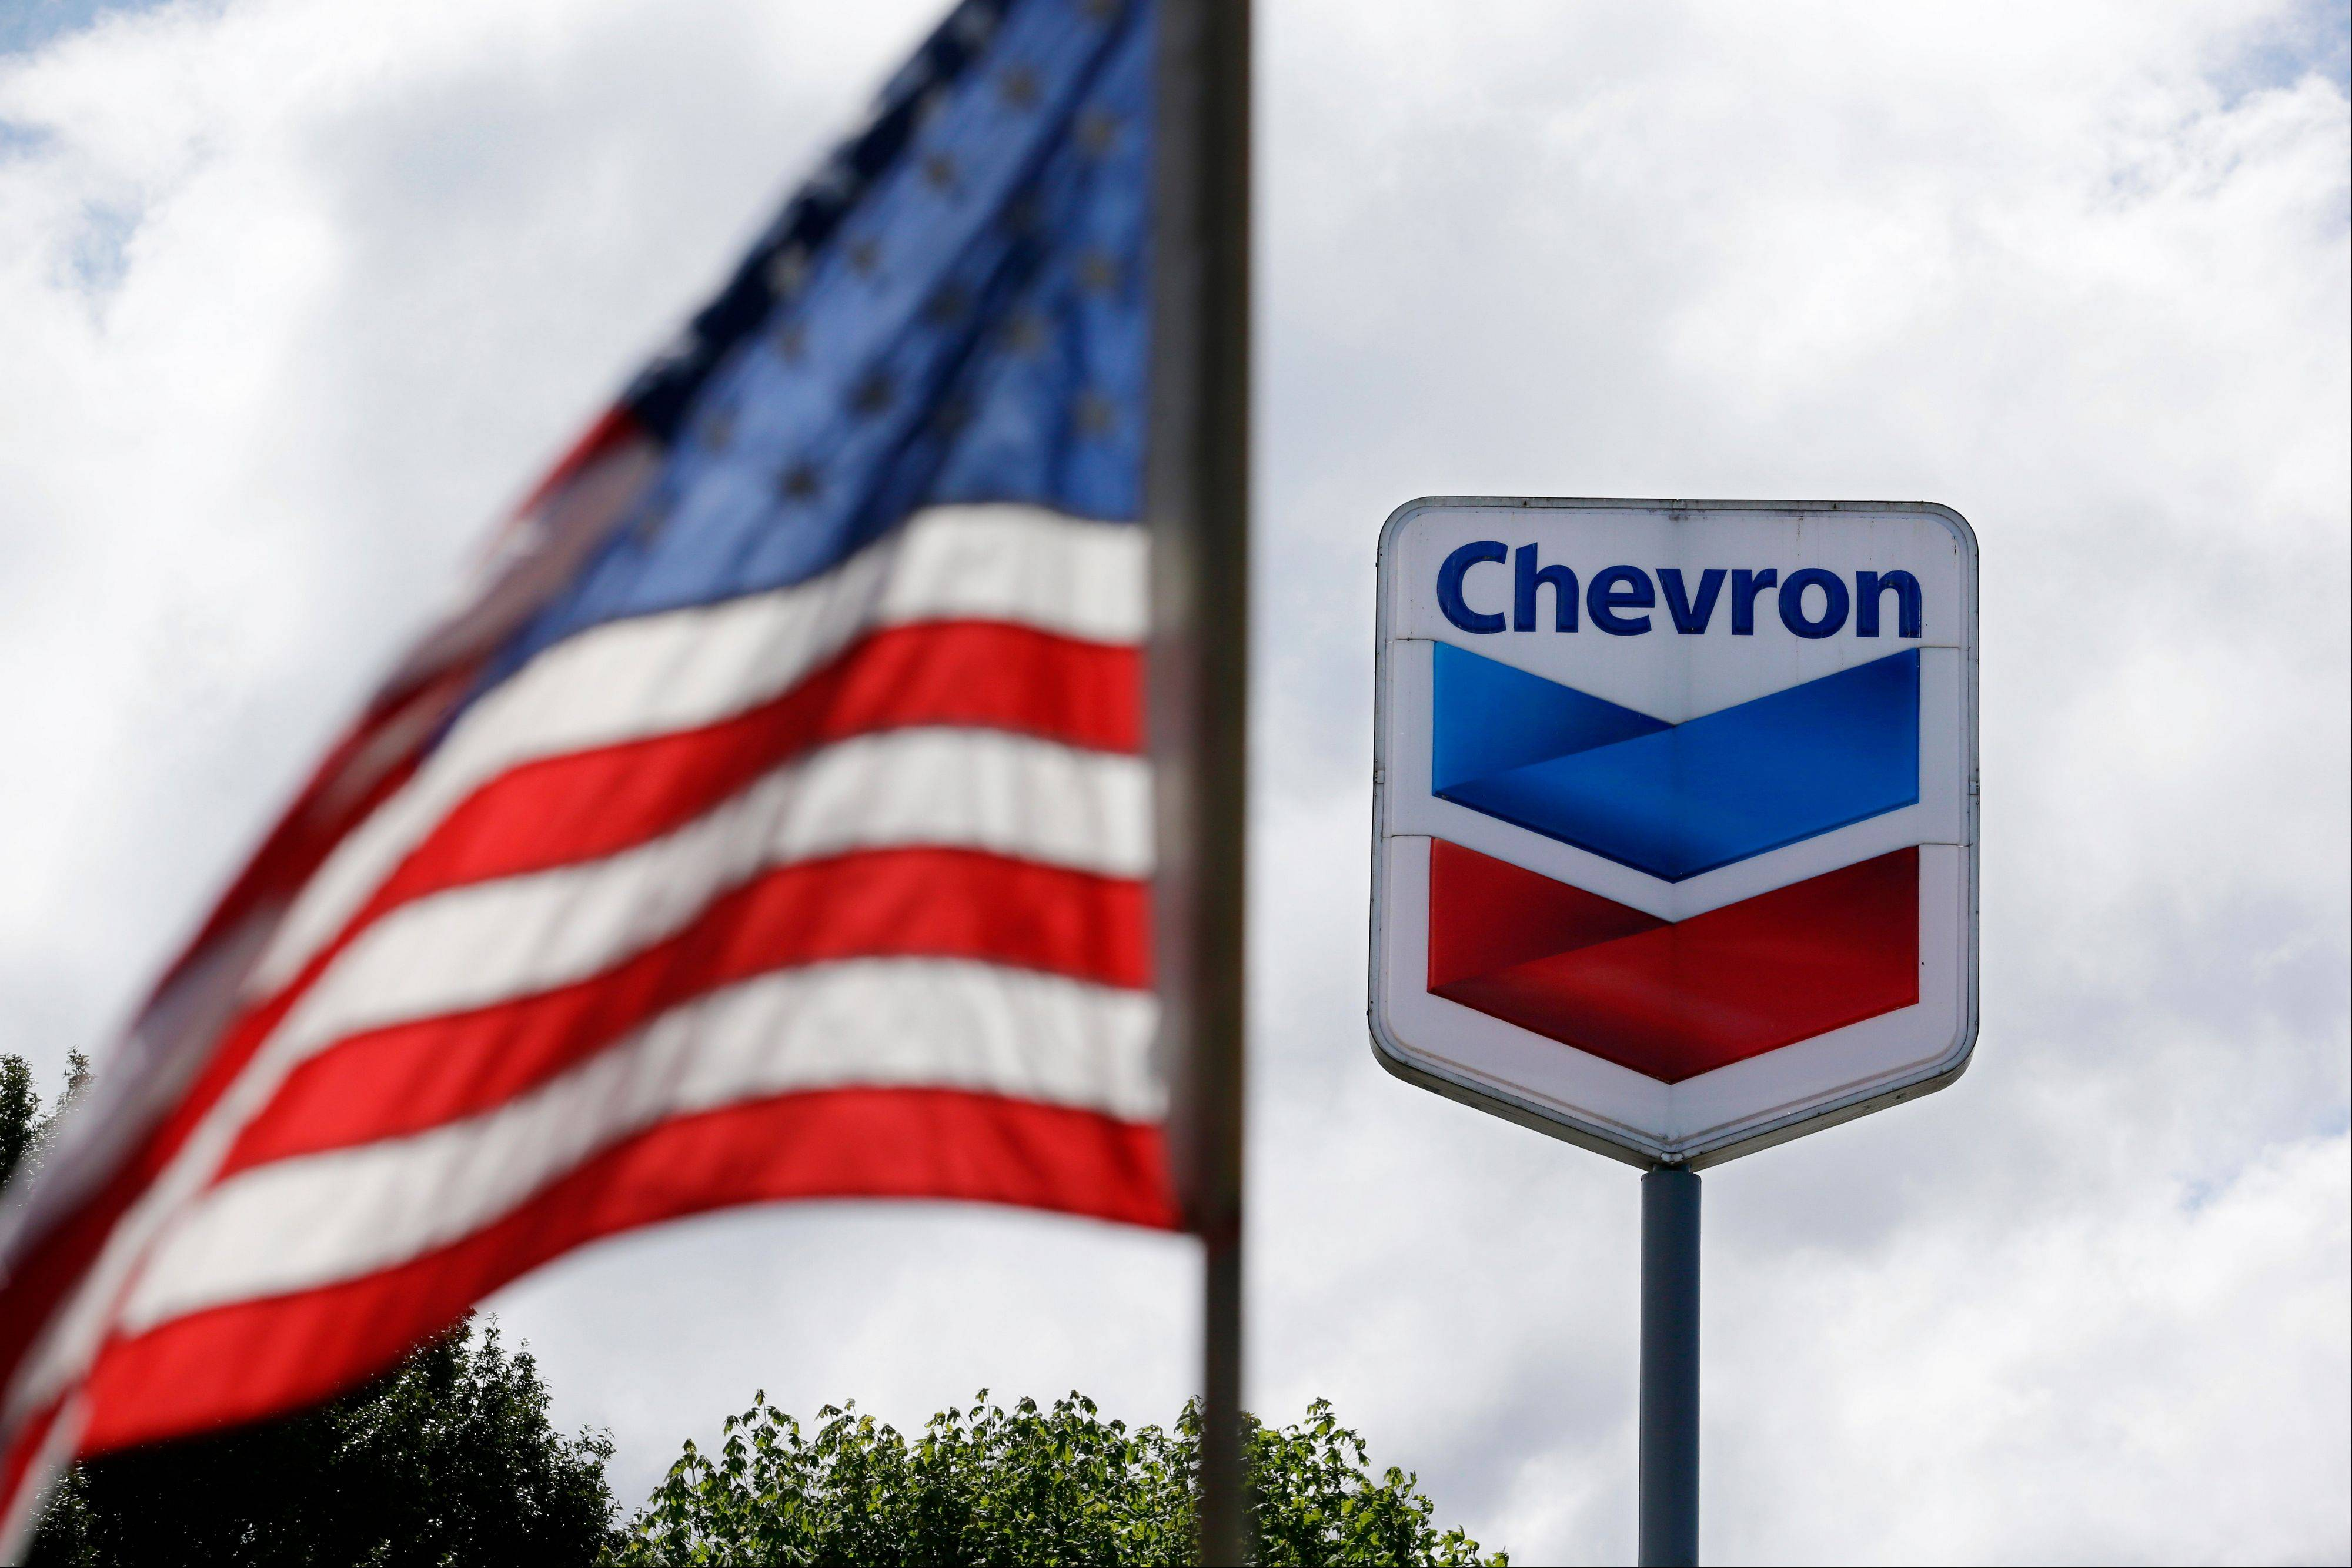 Chevron said Friday that net income fell 6 percent in the third quarter as weak refining results and higher operating costs offset higher oil and gas production and prices.